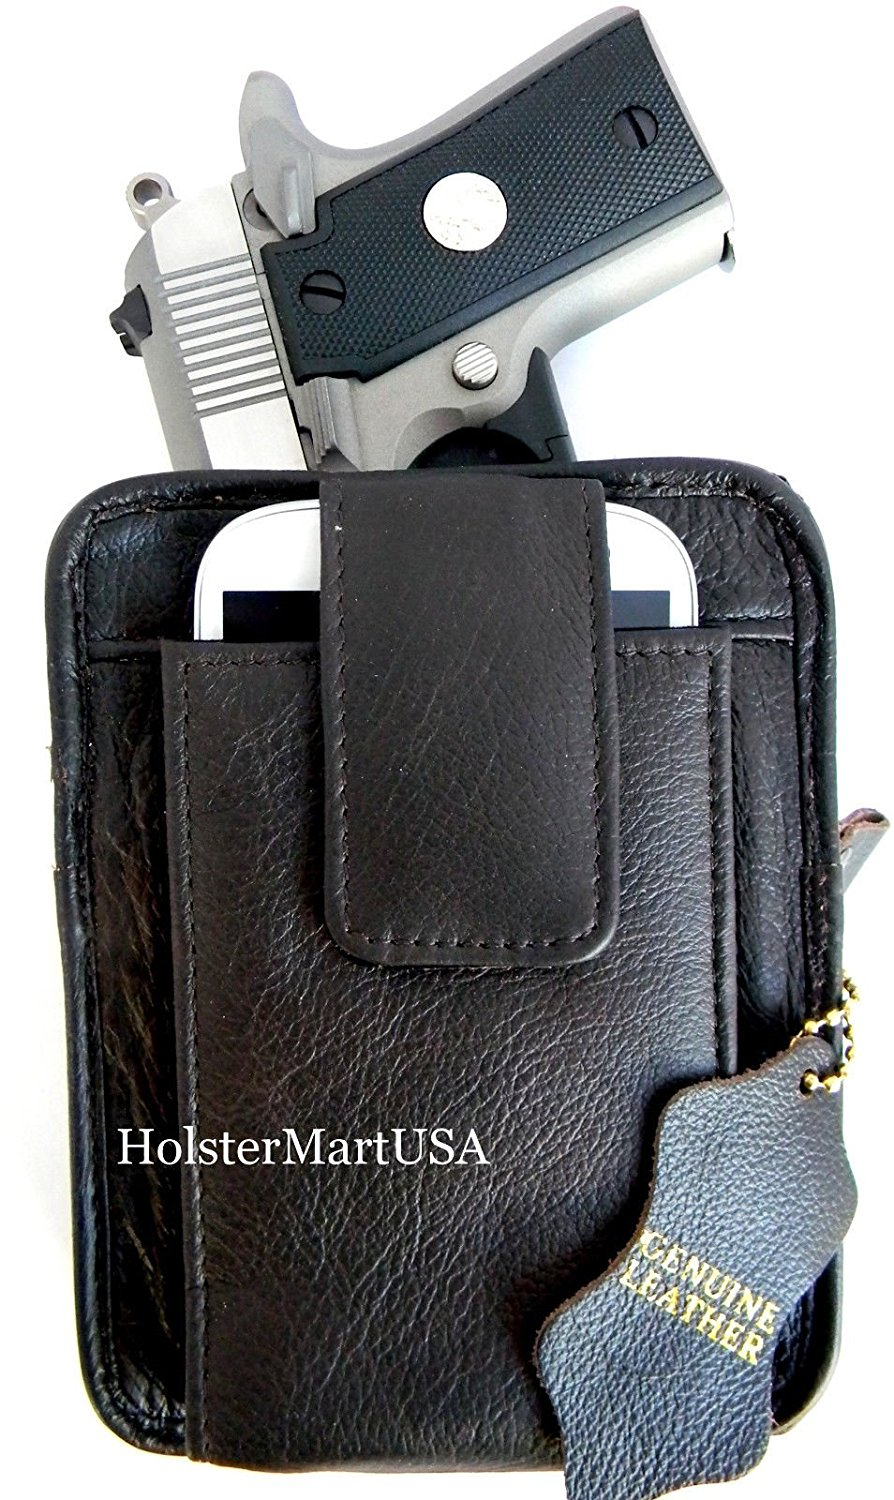 the best attitude 10f0b c0958 Best Cell Phone Gun Holster: The Top 5 Reviews & Buying Guide 2017 ...